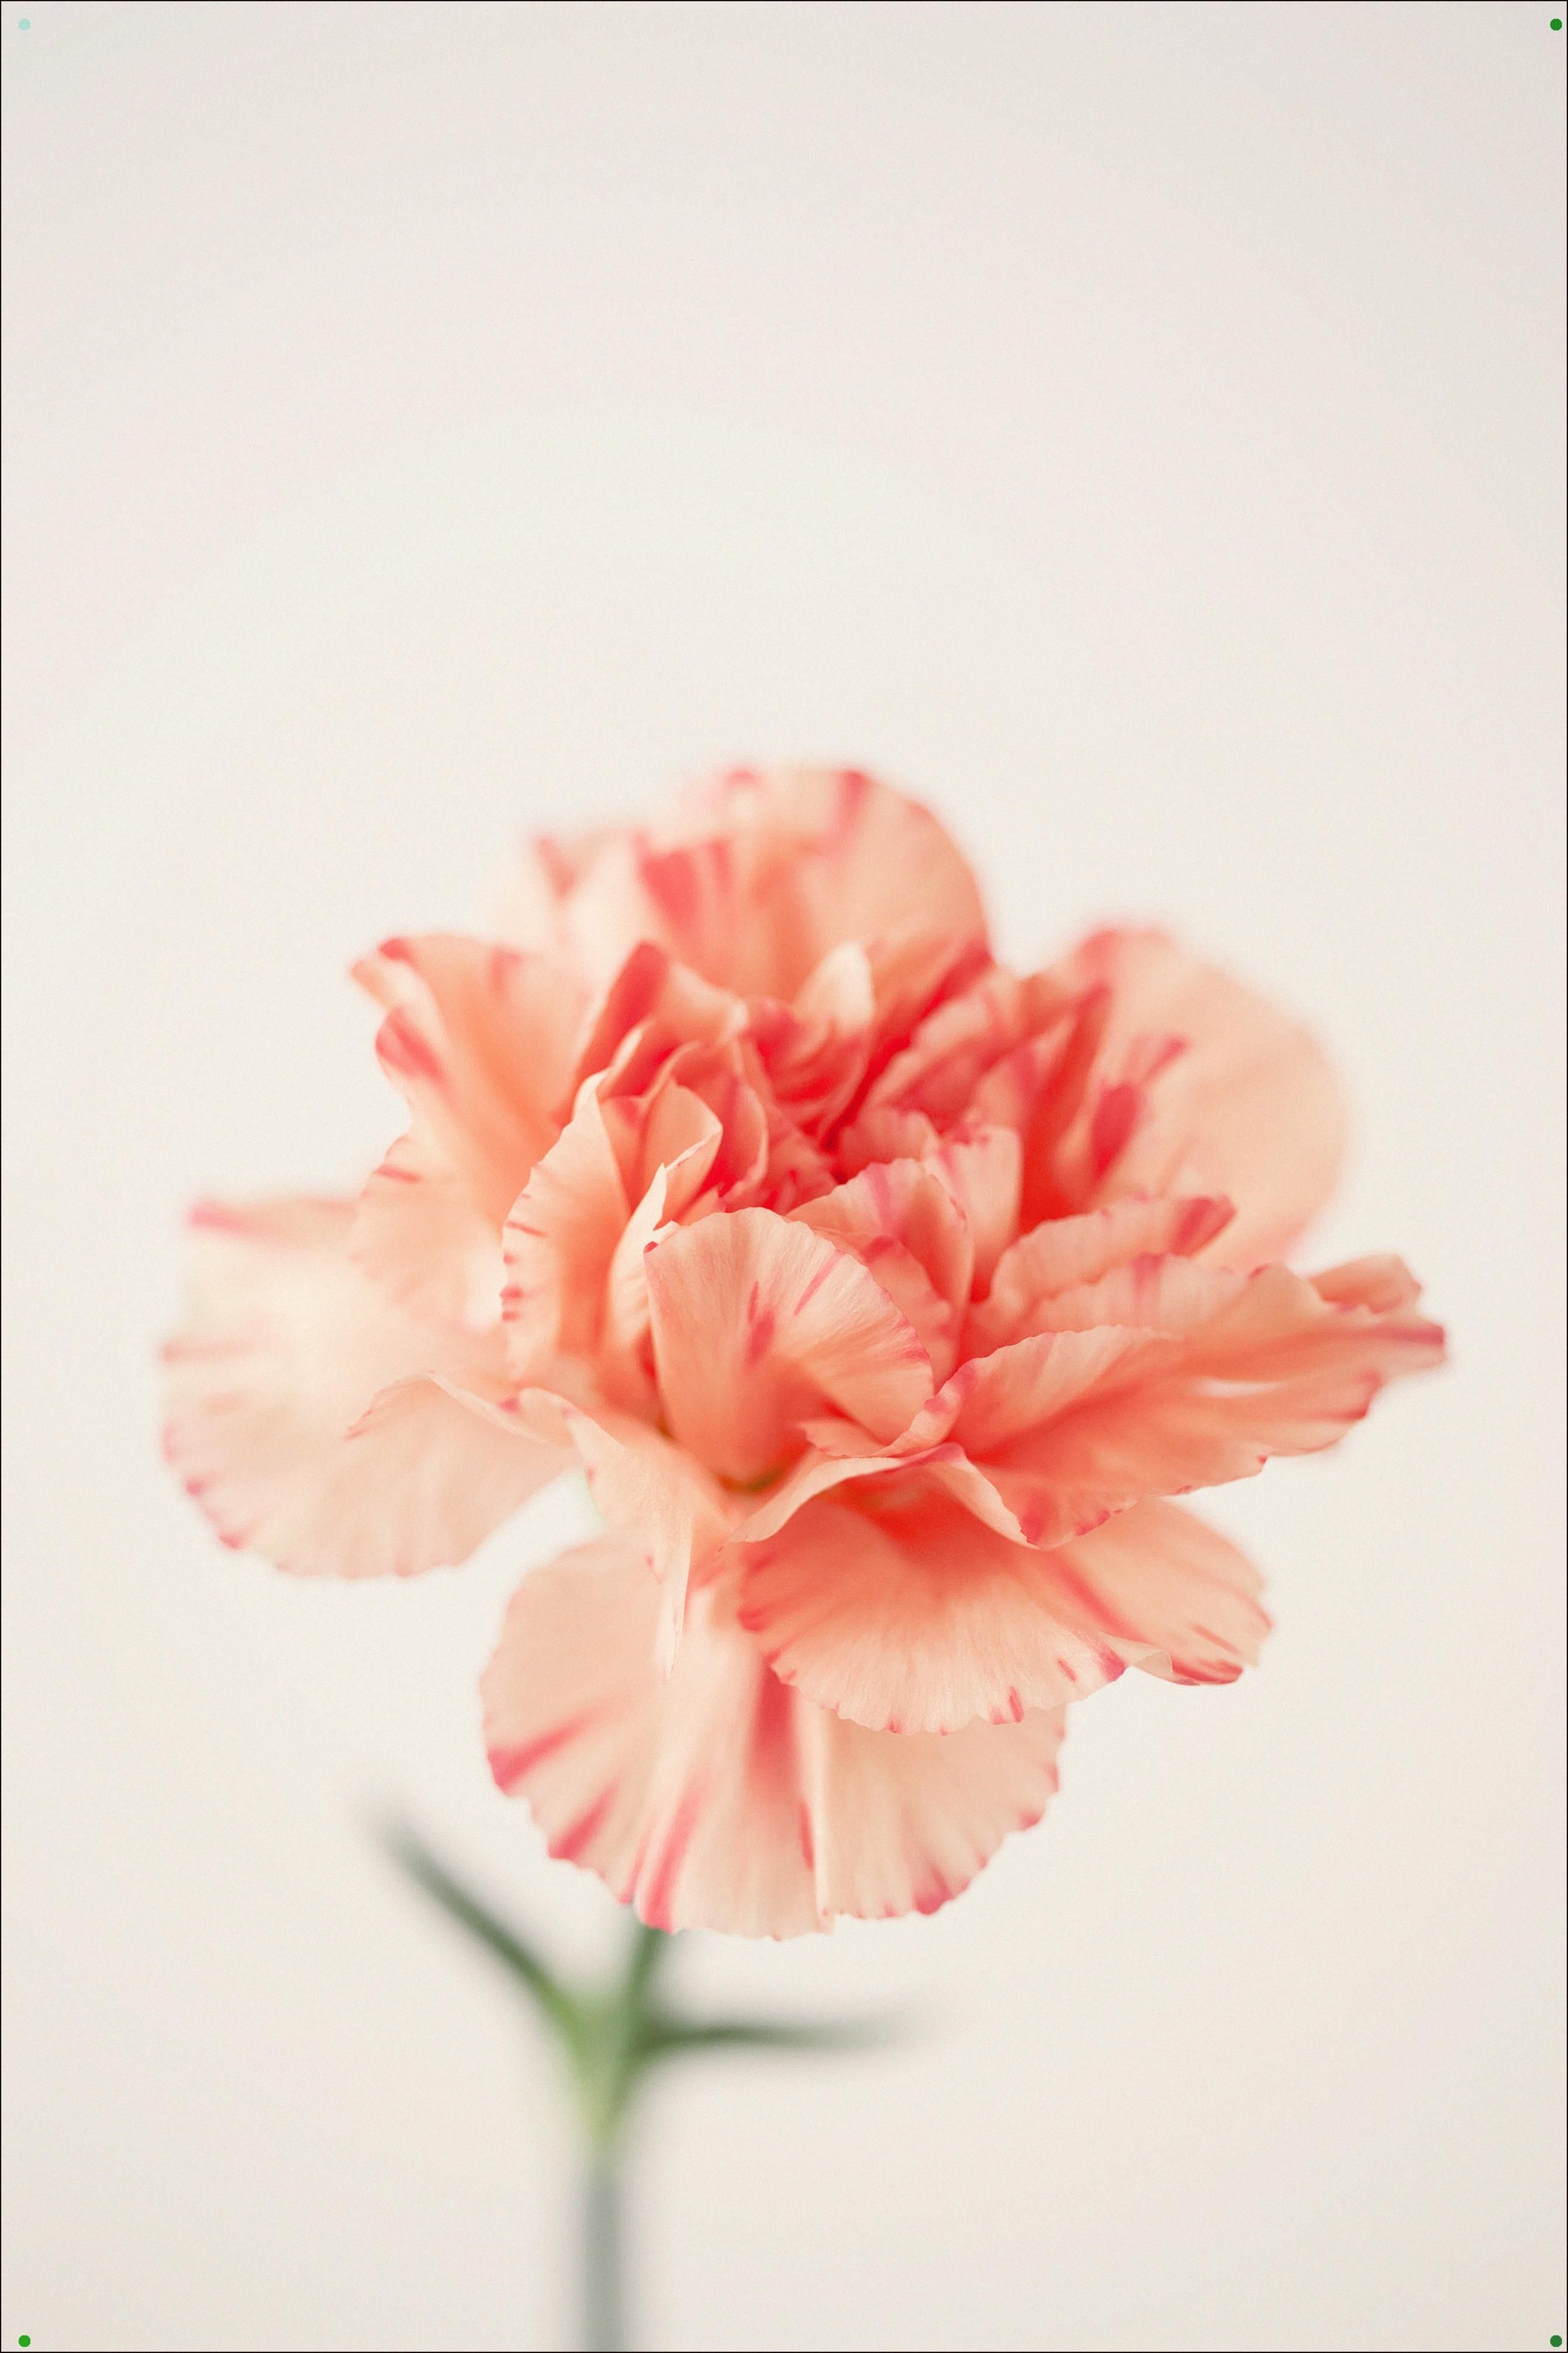 These Ruffly Flowers Don T Have The Best Reputation But If You Love To Give Them Choose White Sweet And Love Carnation Flower Meaning Flower Meanings Flowers